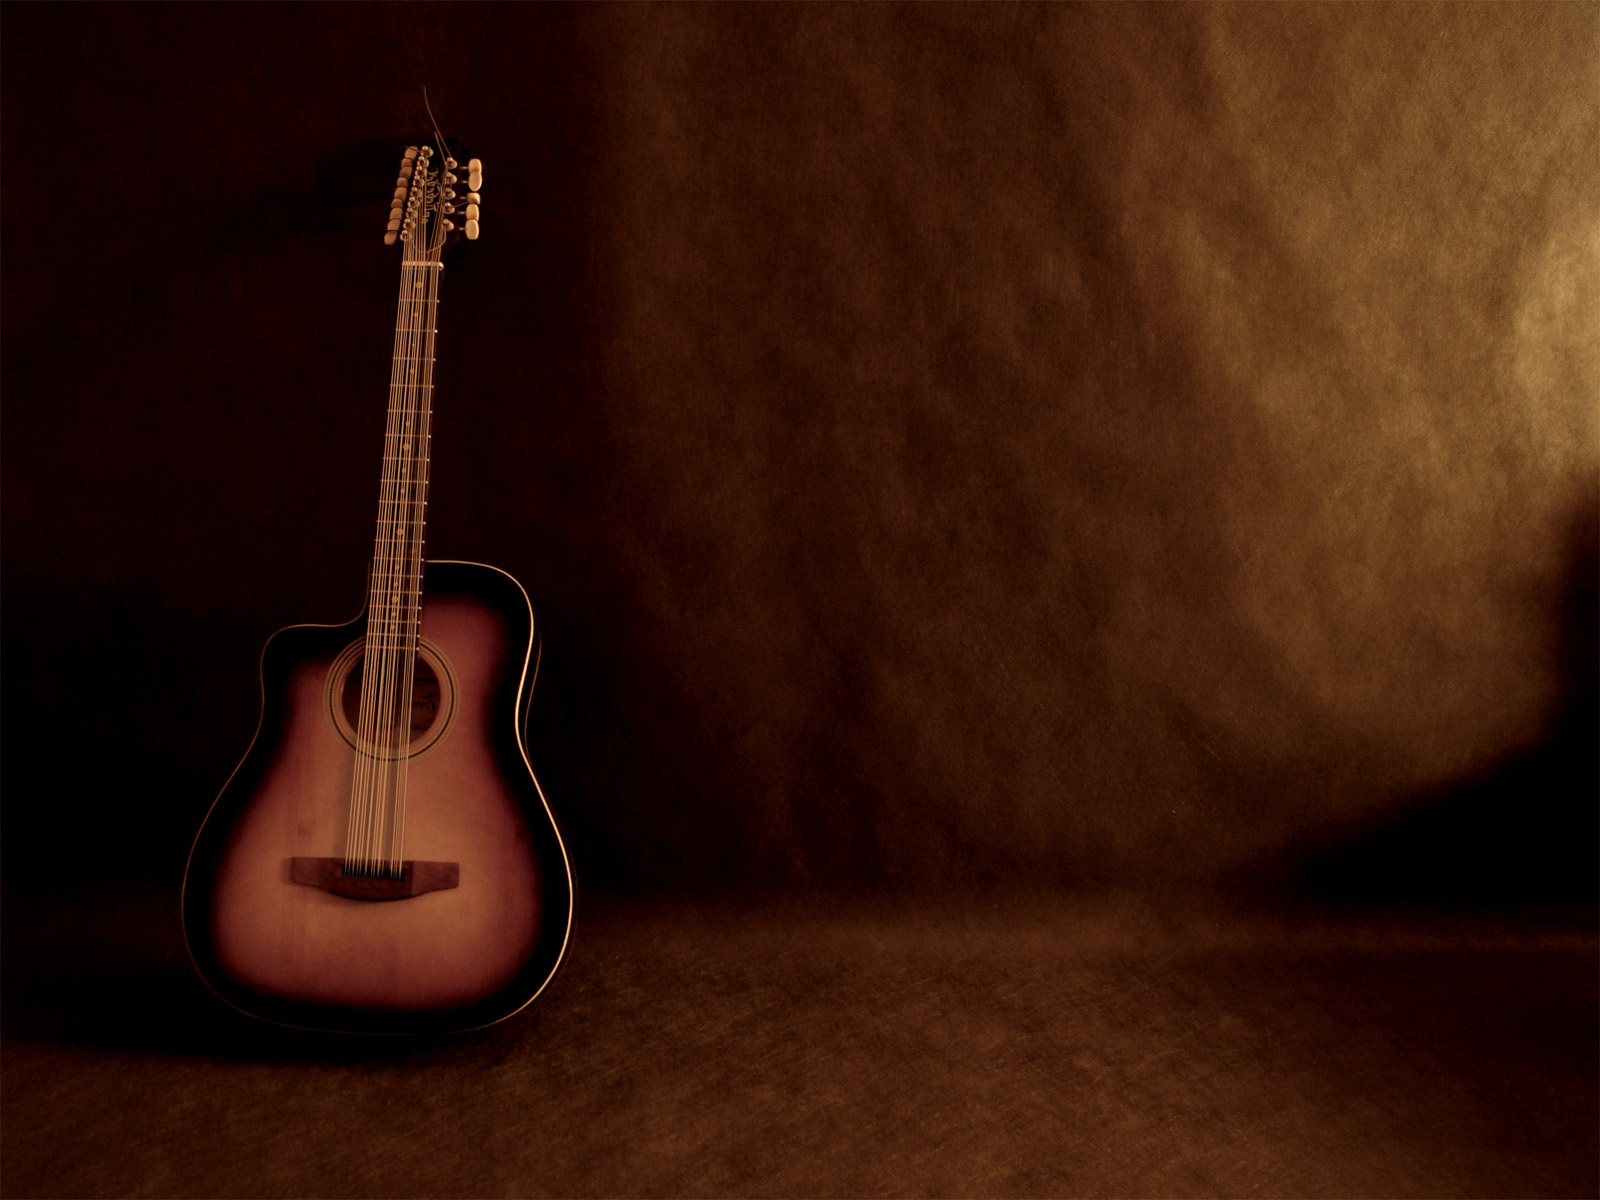 2015 By Stephen Comments Off On Acoustic Guitar Wallpapers Guitar Background Photo Download 1600x1200 Download Hd Wallpaper Wallpapertip